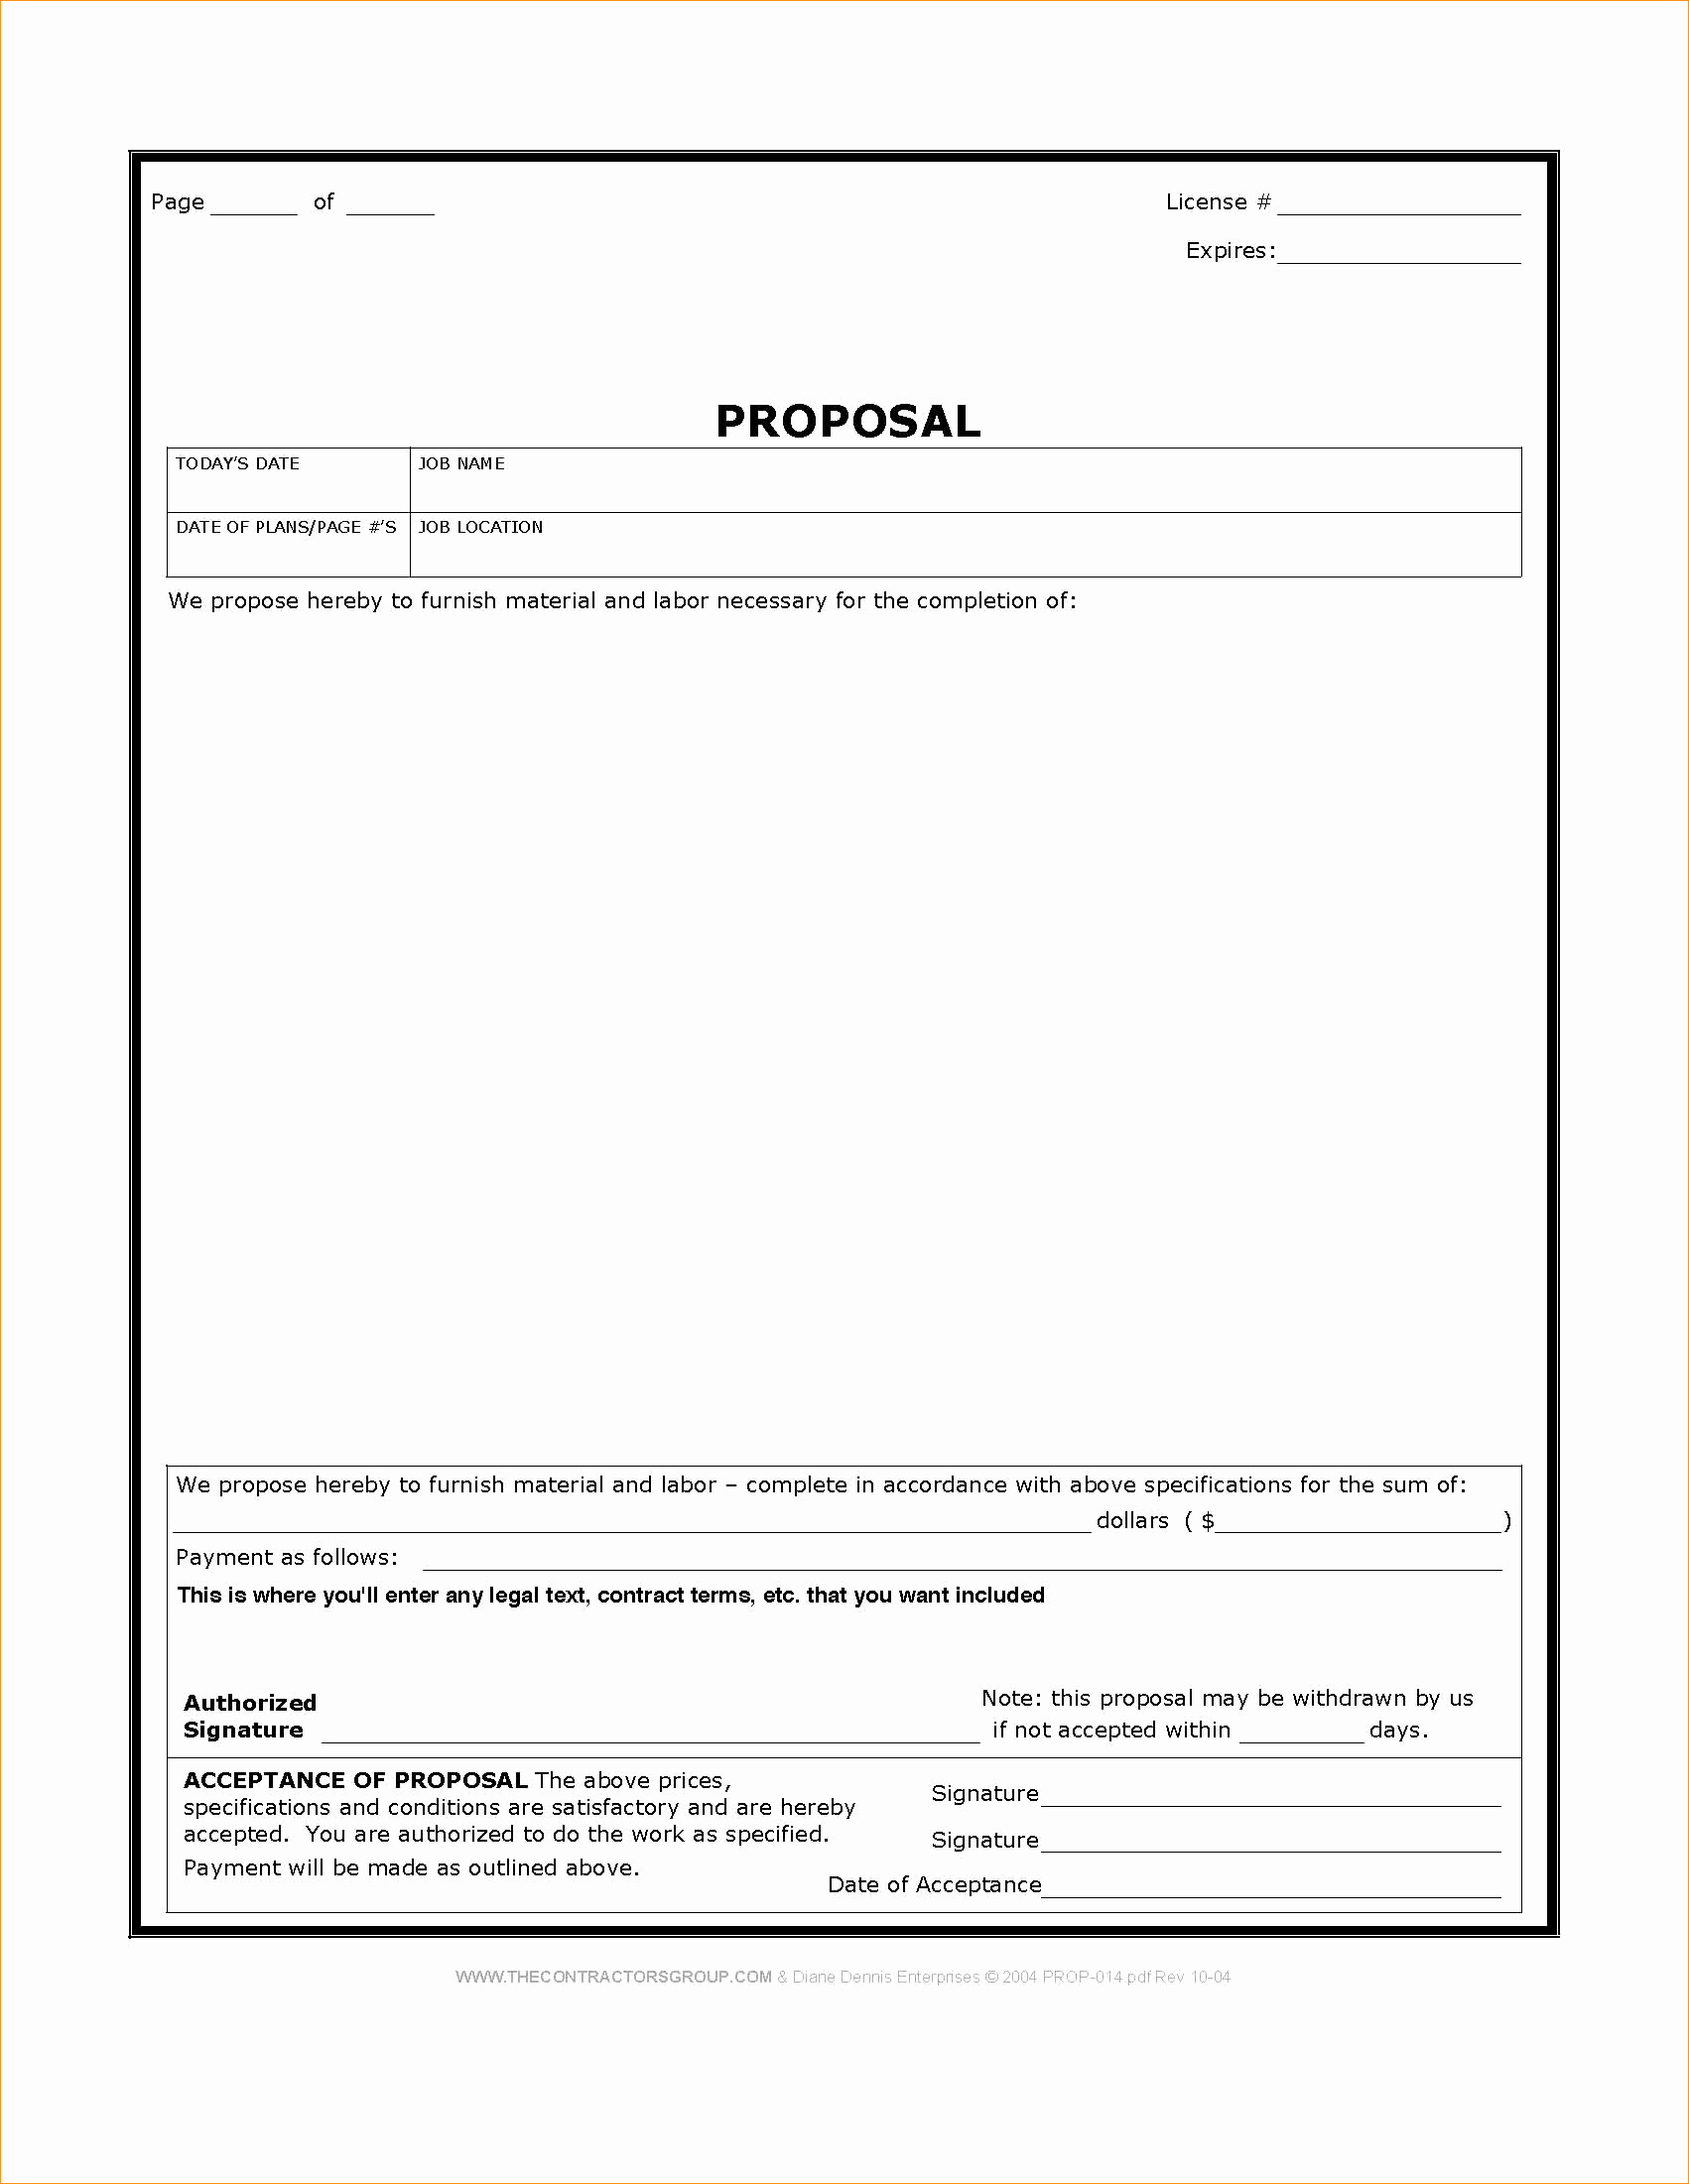 Free Proposal form Template Awesome Construction Proposal Template Word Business Proposal